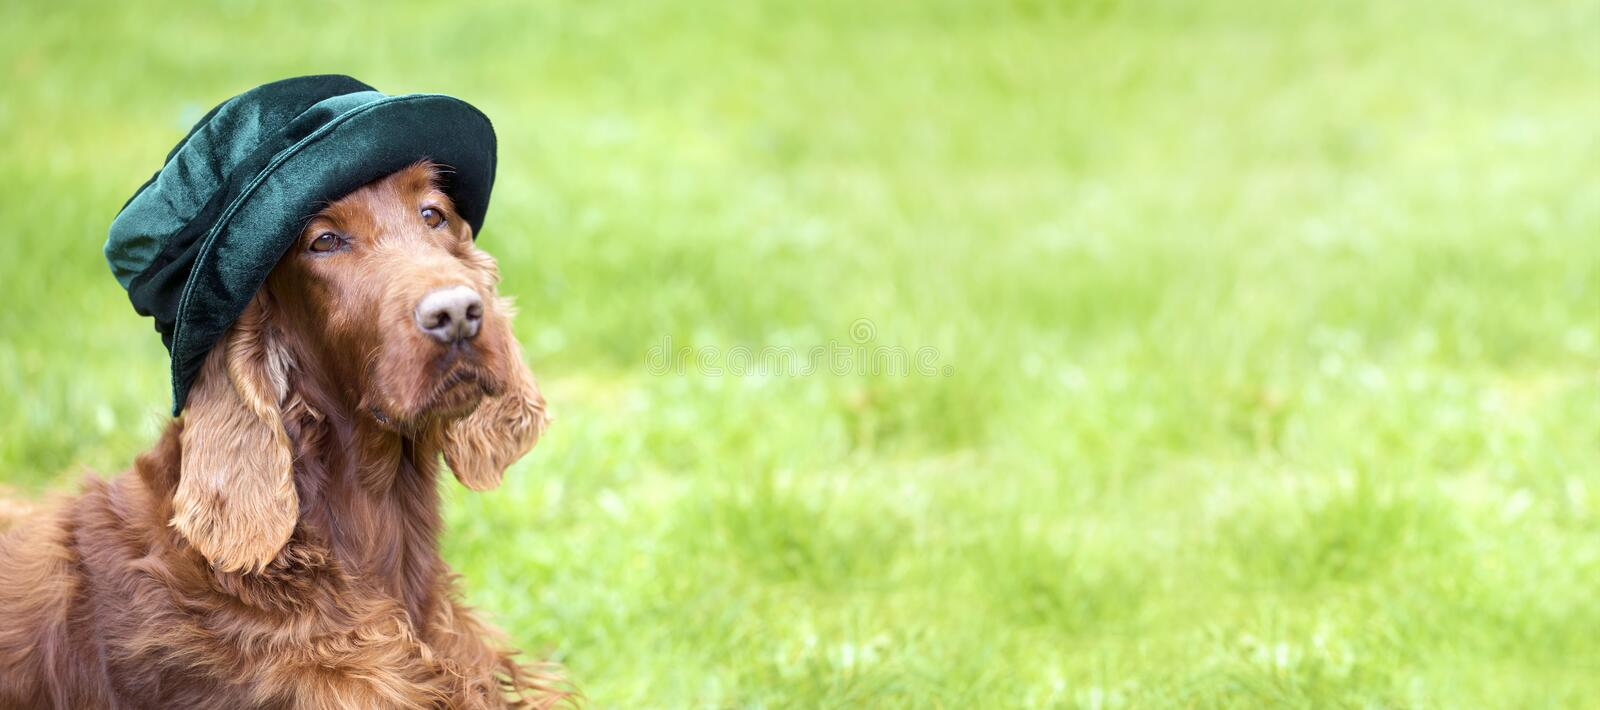 Web banner of a funny dog with green hat royalty free stock photos